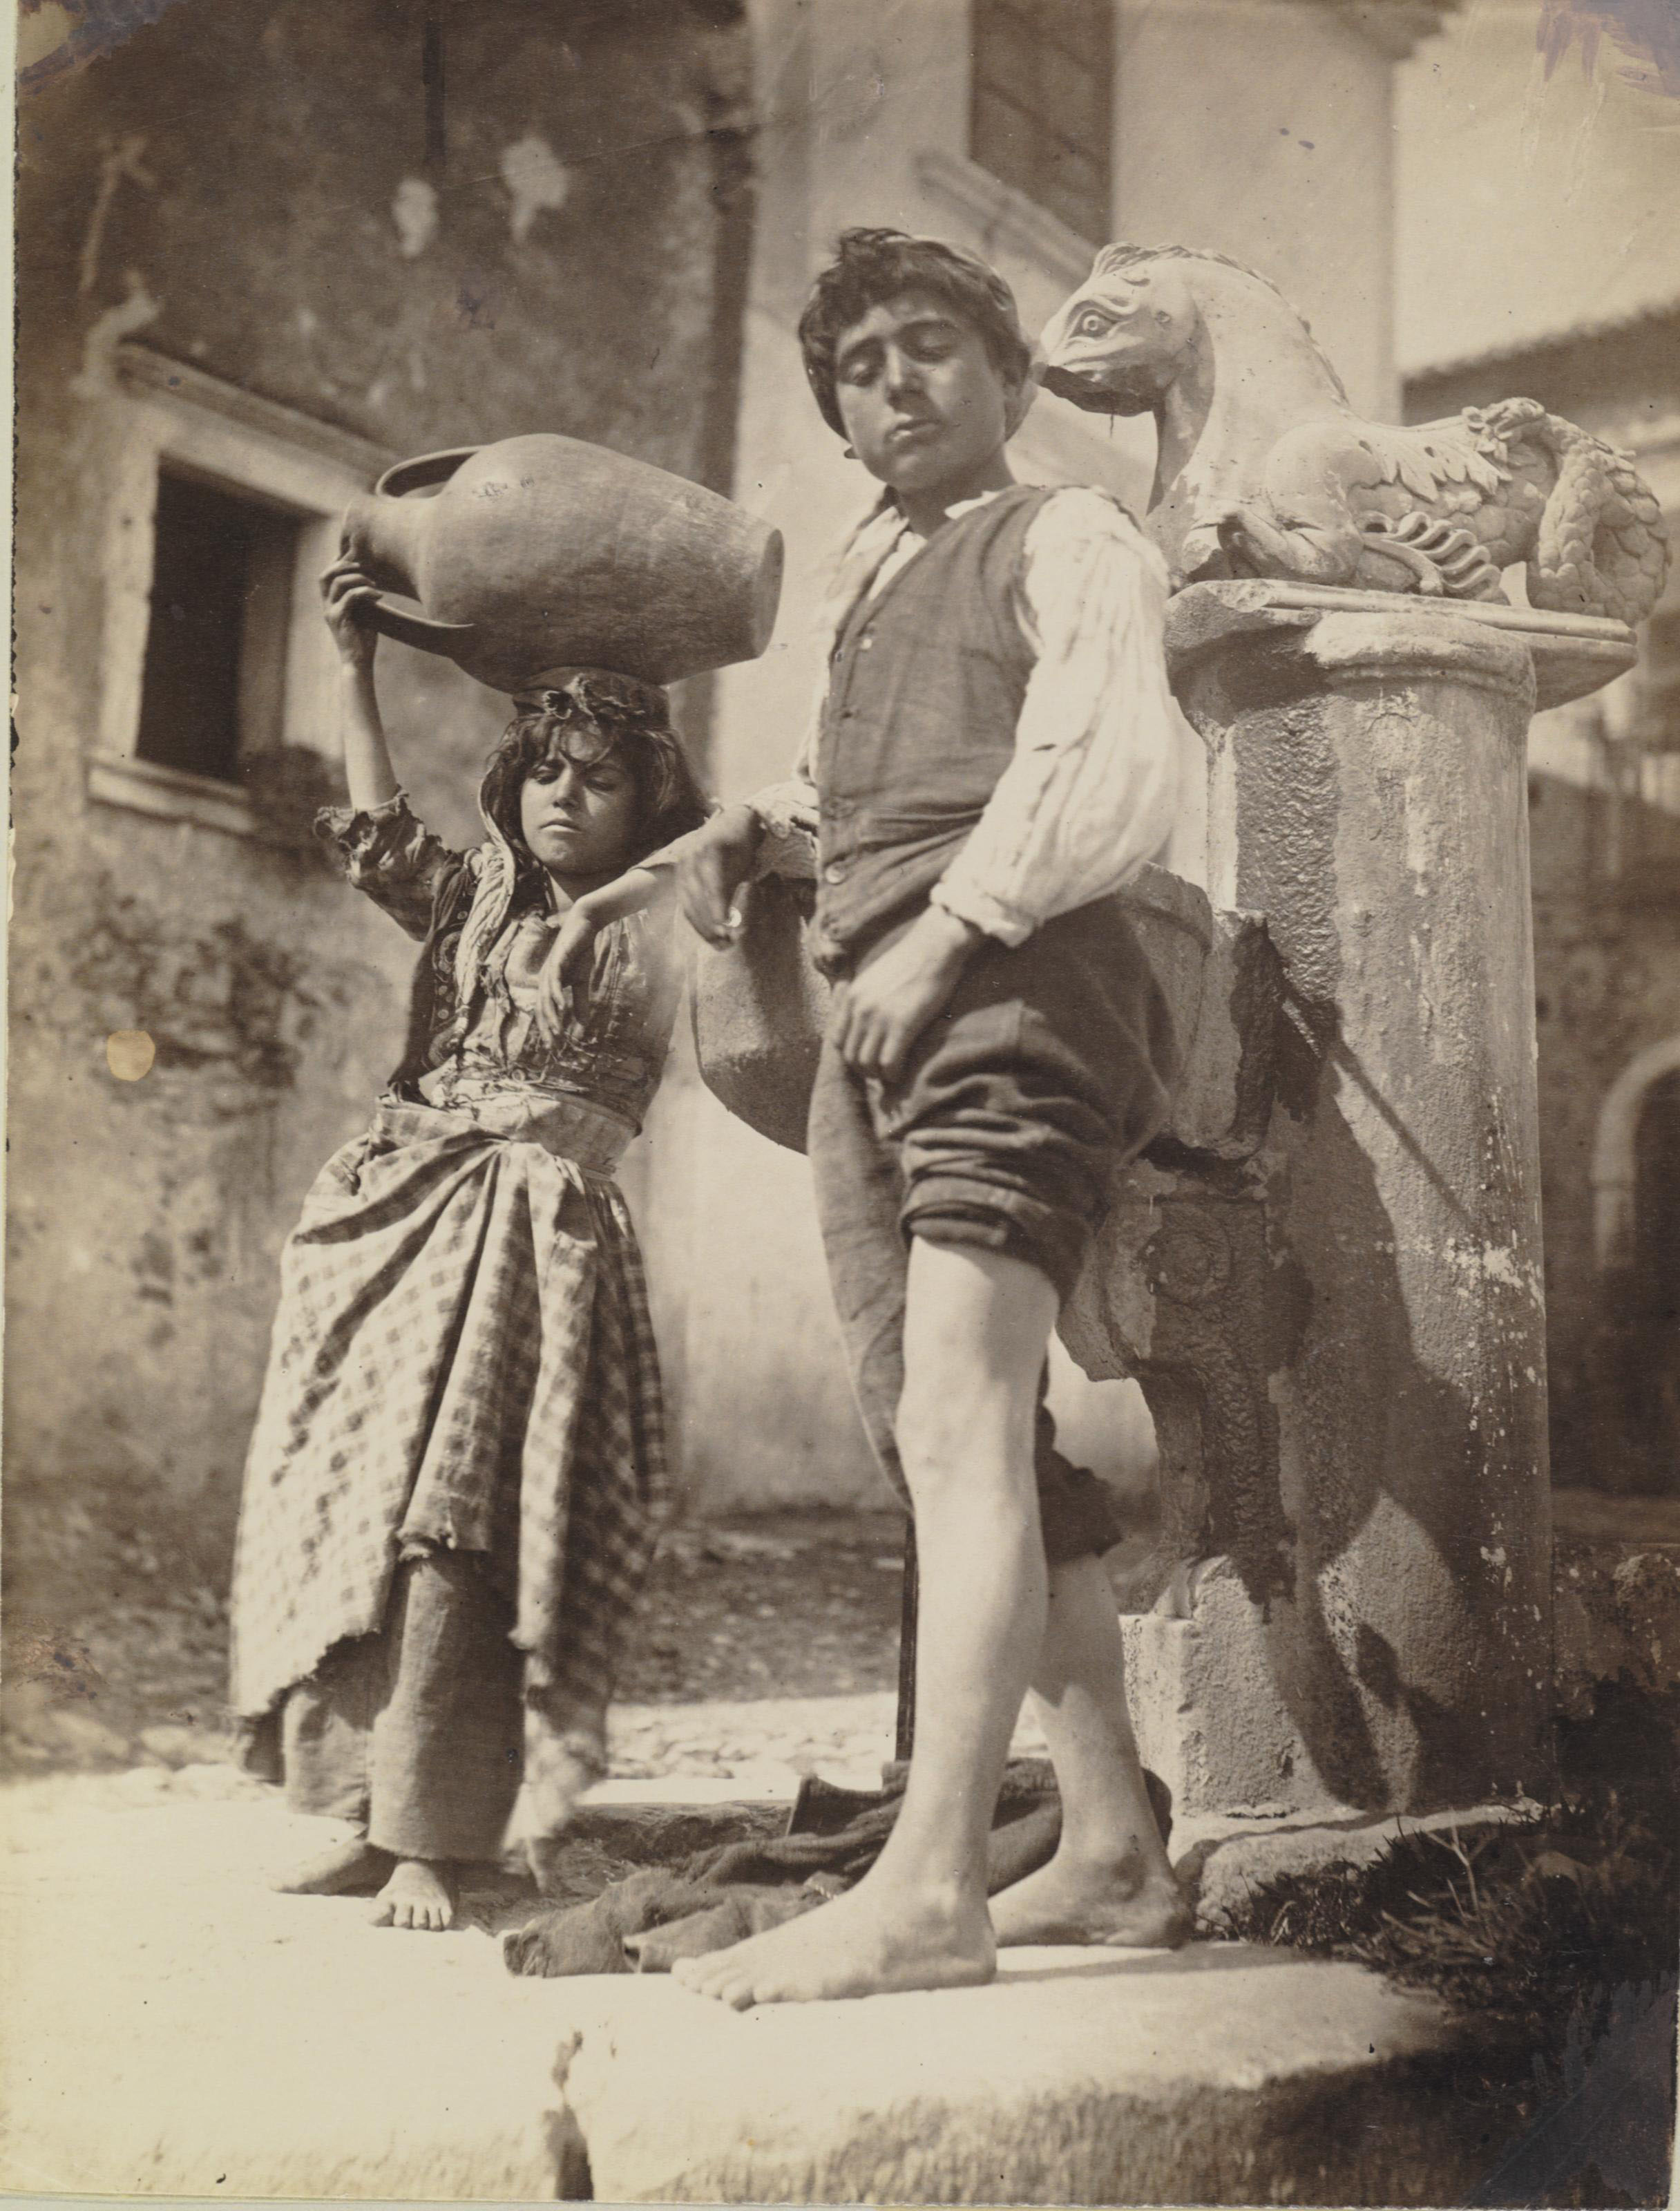 https://www.christies.com/img/LotImages/2012/NYR/2012_NYR_02603_0120_000(baron_wilhelm_von_gloeden_two_sicilian_youths_c_1916040930).jpg?mode=max